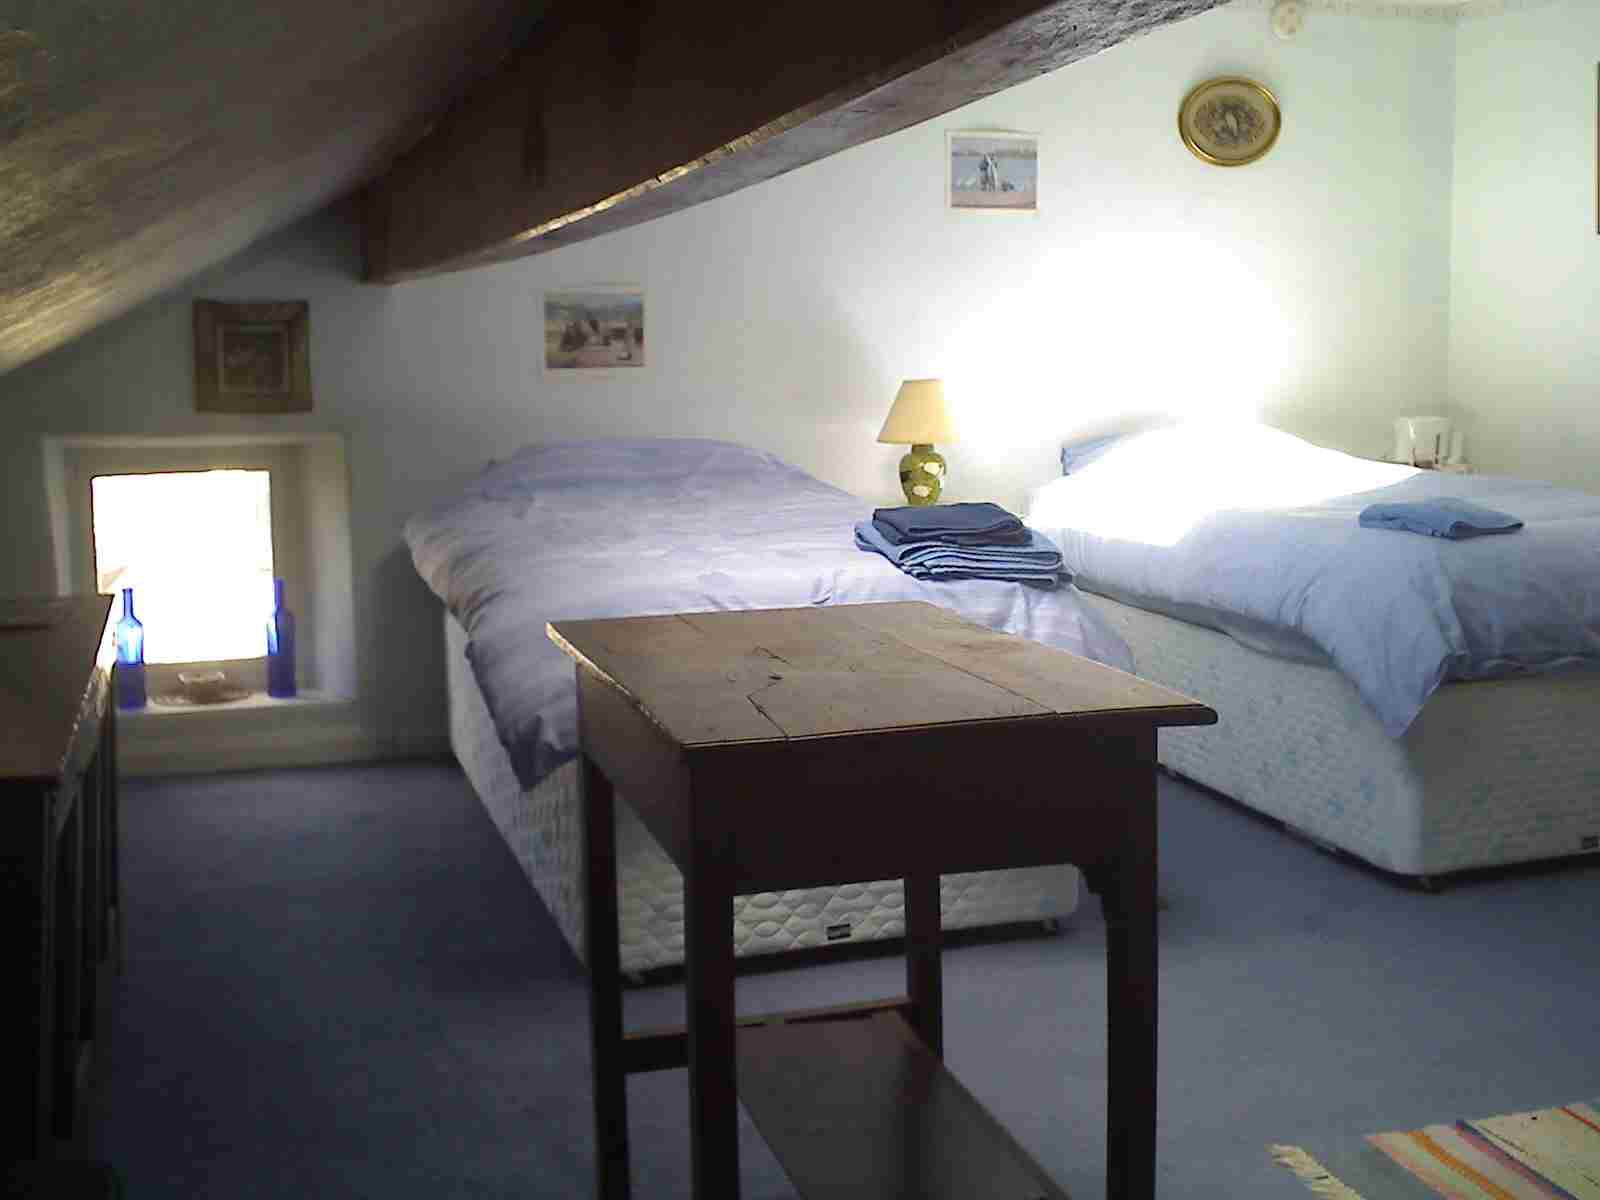 Bed And Breakfast Cockermouth Quotriverside Quot Bed And Breakfast Cockermouth Cumbria The